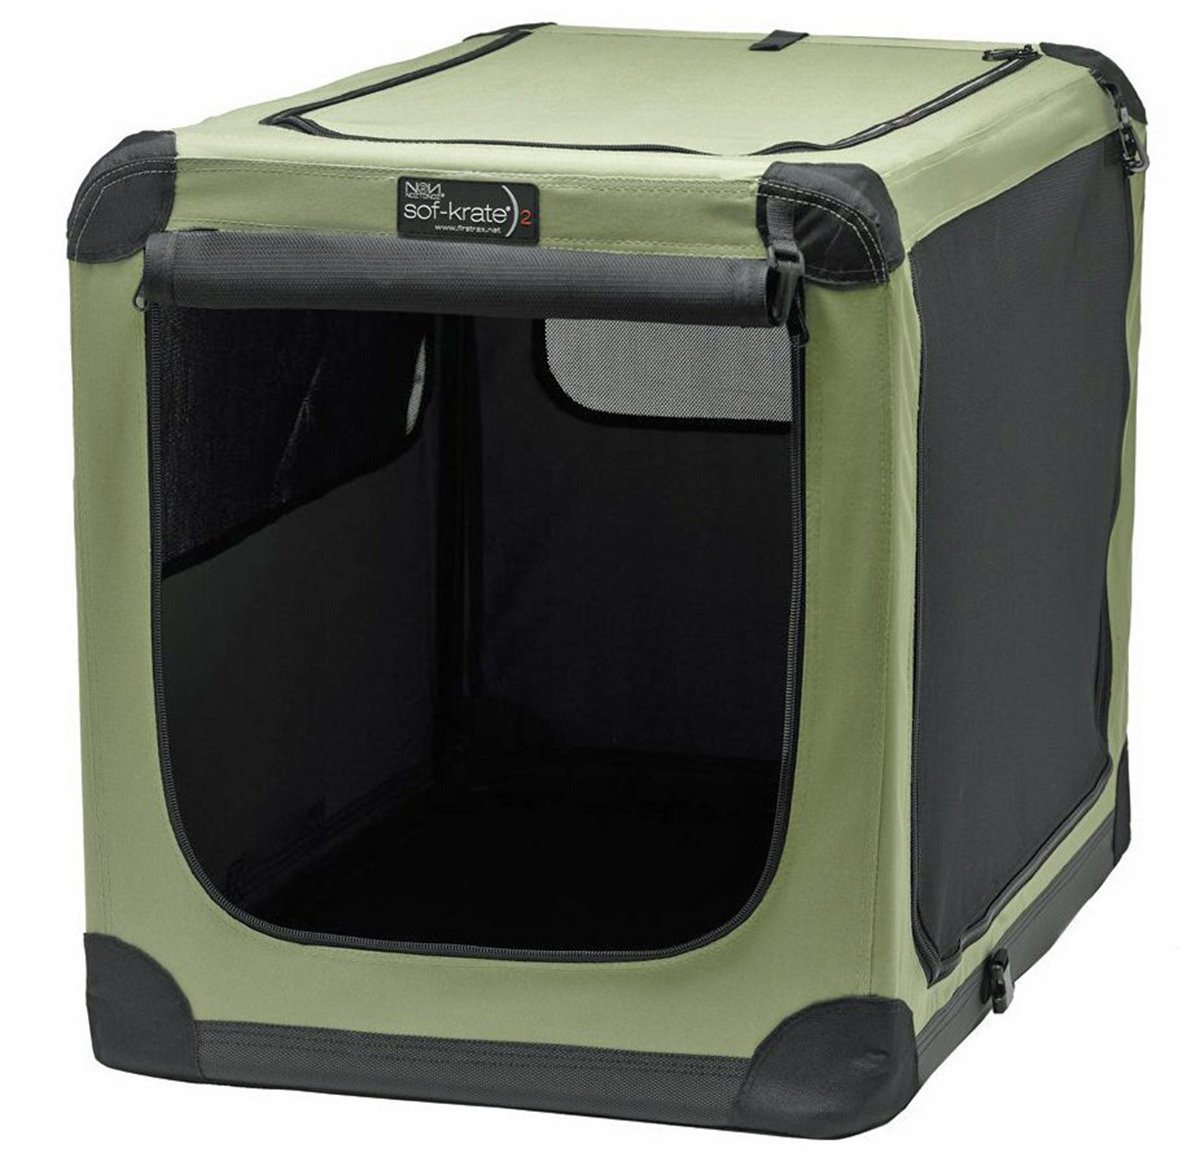 Noz2Noz Soft-Krater Indoor and Outdoor Crate for Pets